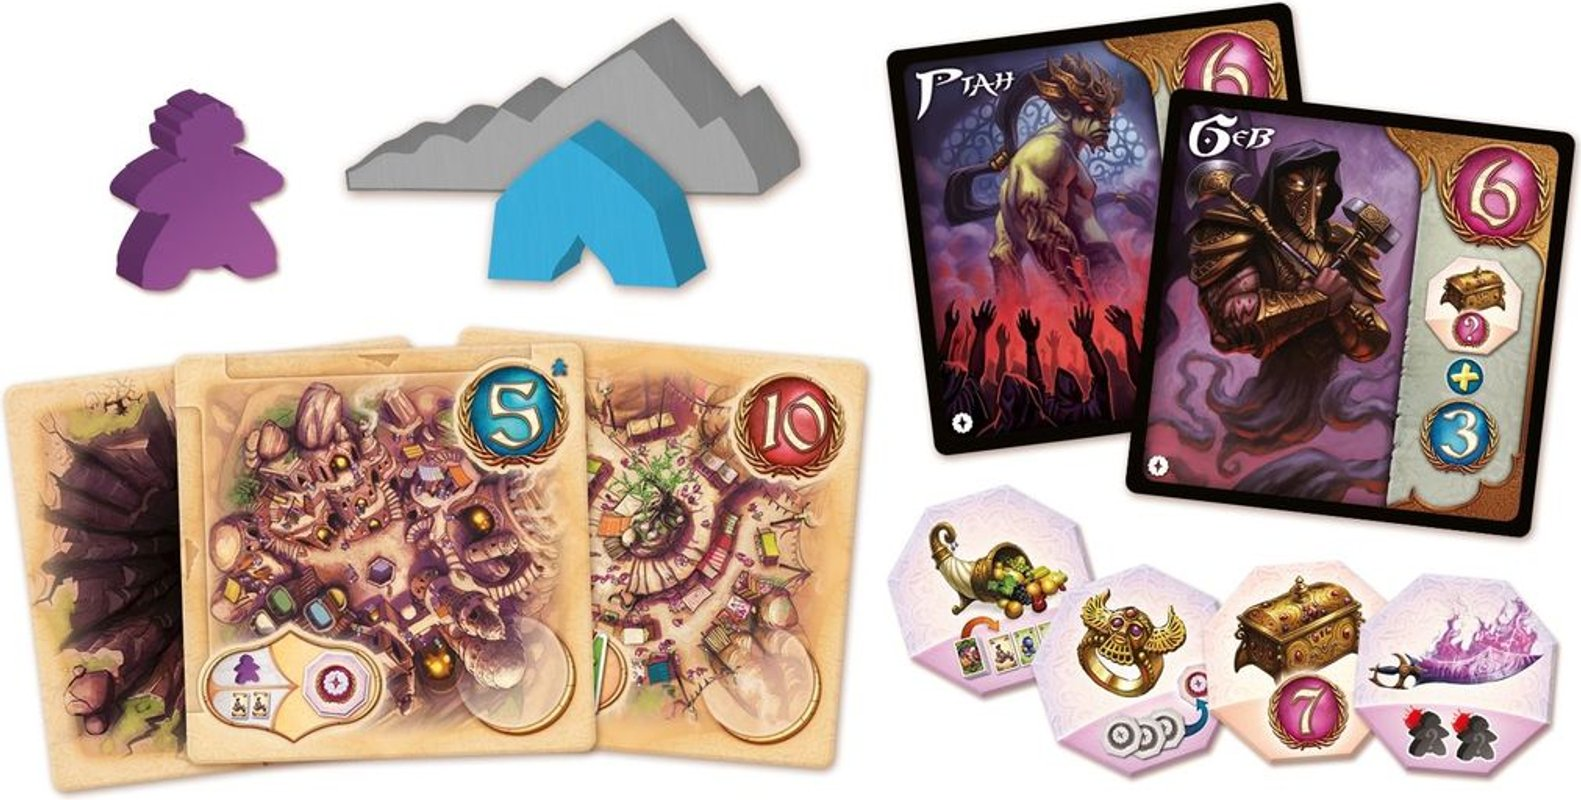 Five Tribes: The Artisans of Naqala components